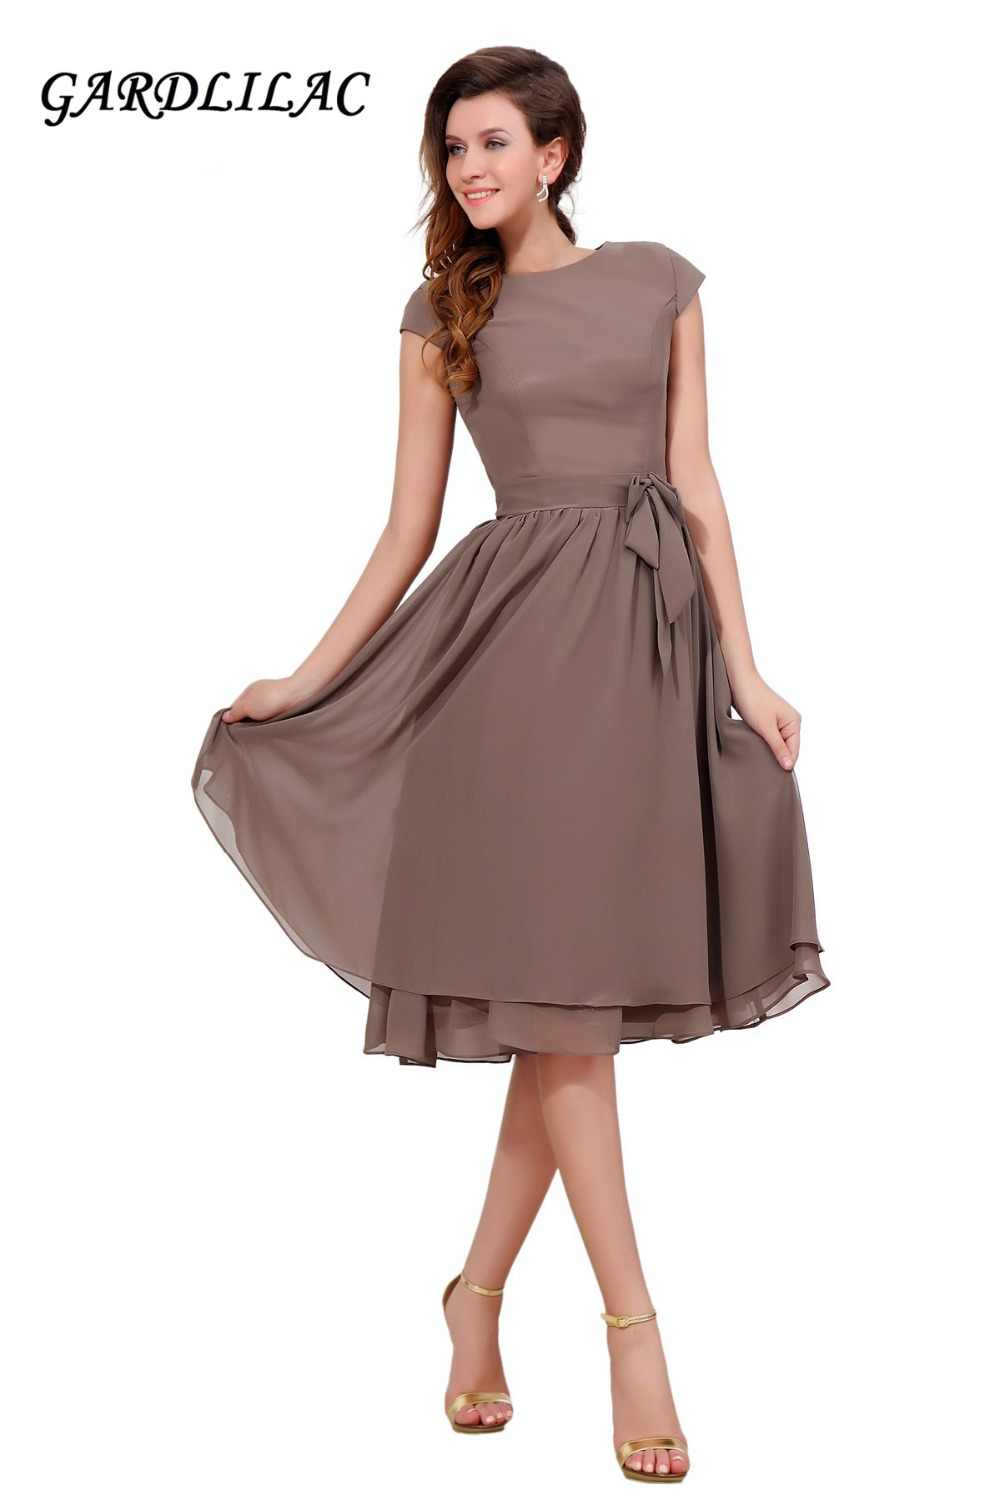 9c183d8ae8 Gardlilac Chiffon Brown Mother of the Bride Dresses Short Sleeve Wedding party  Dress Plus size Prom